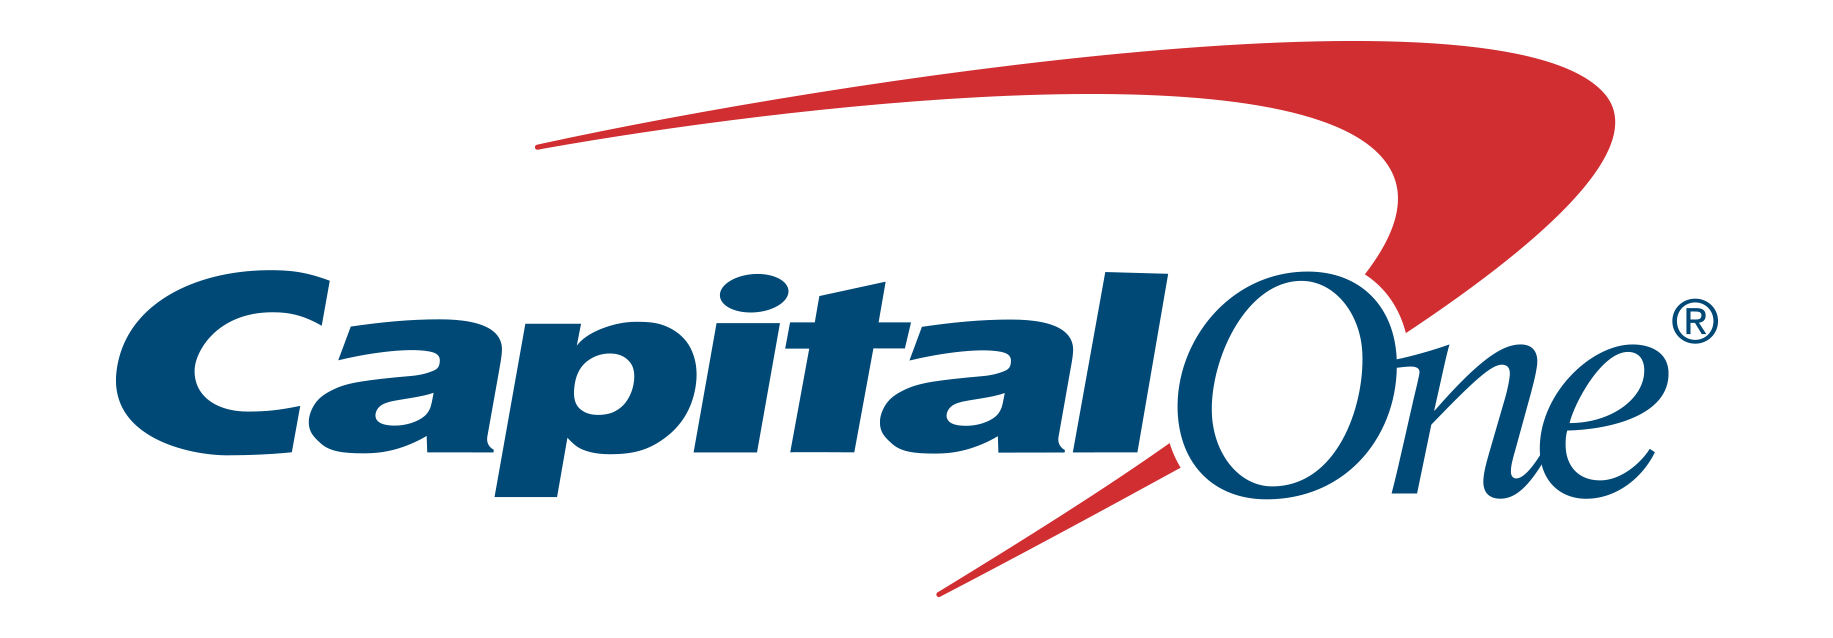 Capital One 360 Checking Account Reviews